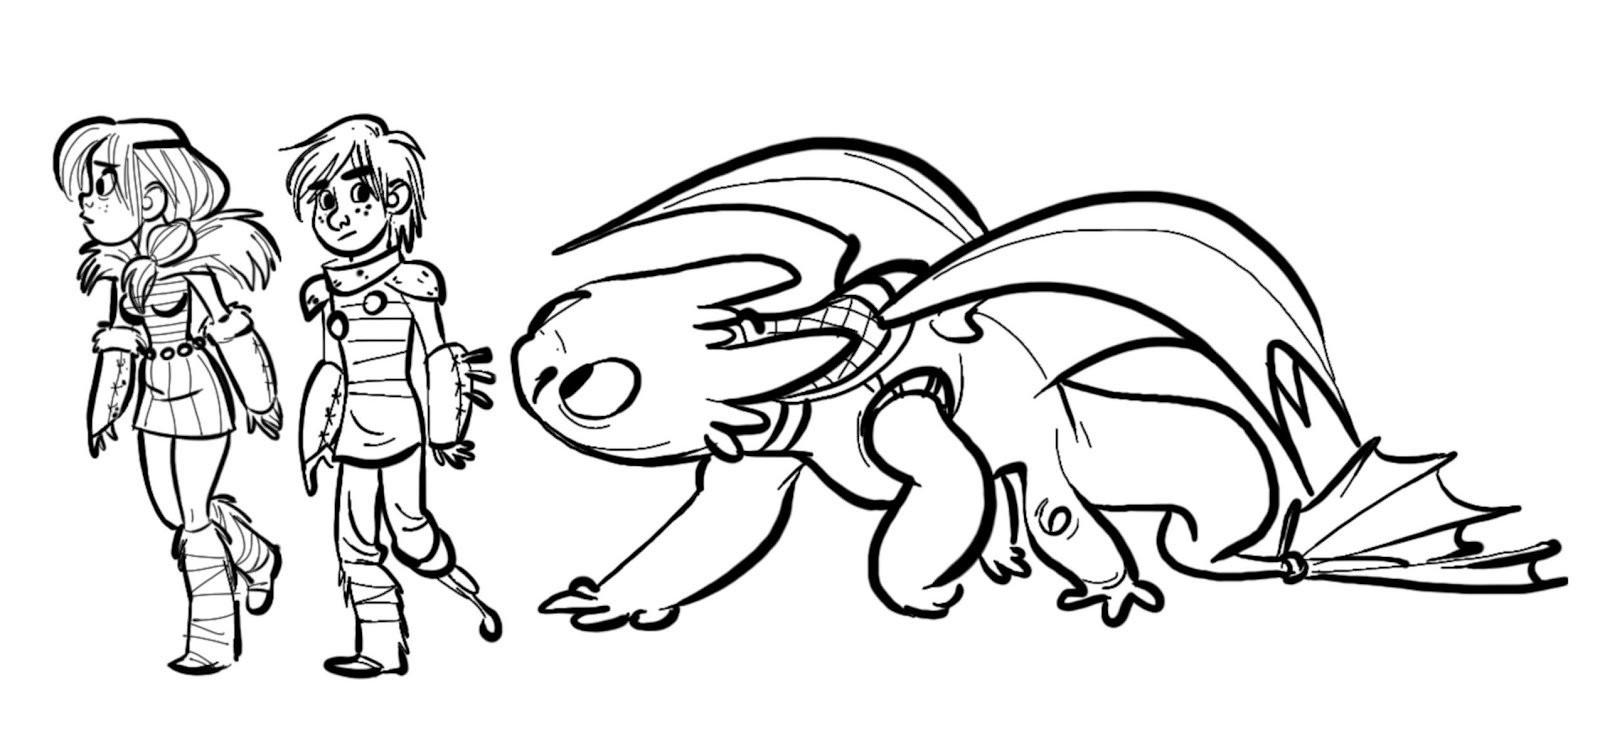 1600x749 Toothless Dragon Coloring Page Free Printable Pages Incredible